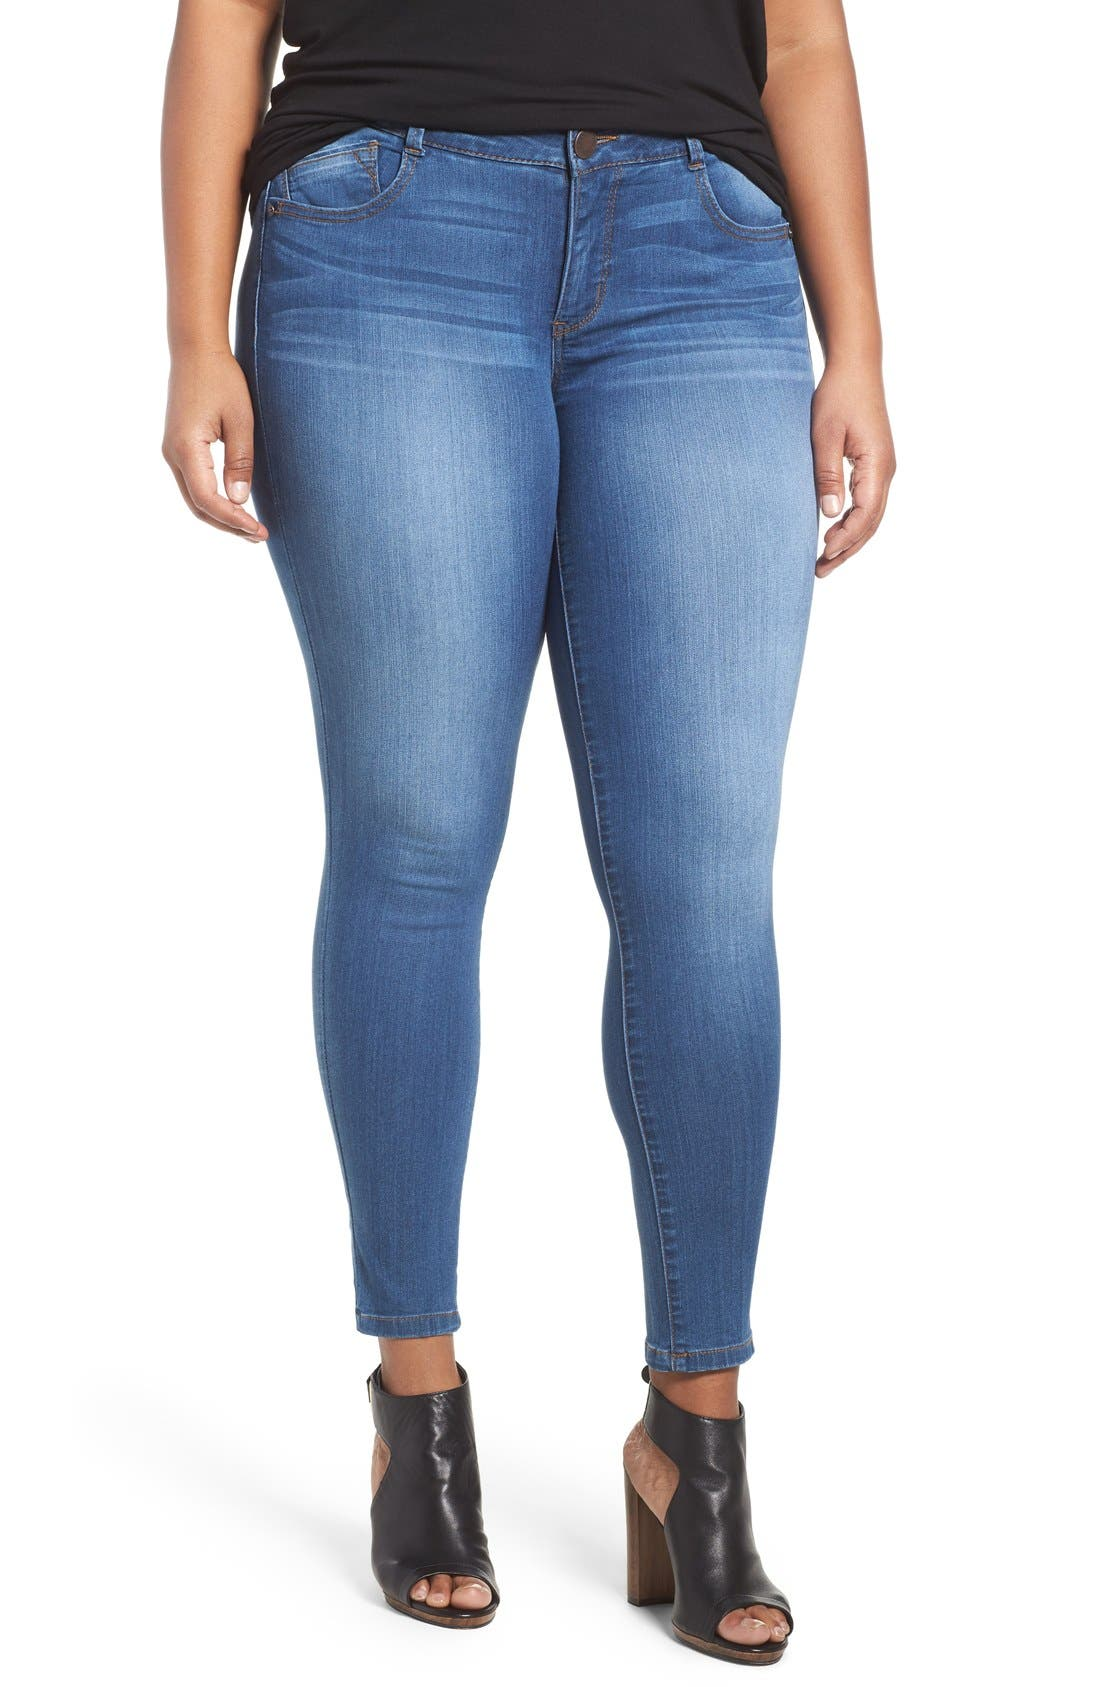 Ab-solution Stretch Skinny Jeans,                         Main,                         color, BLUE